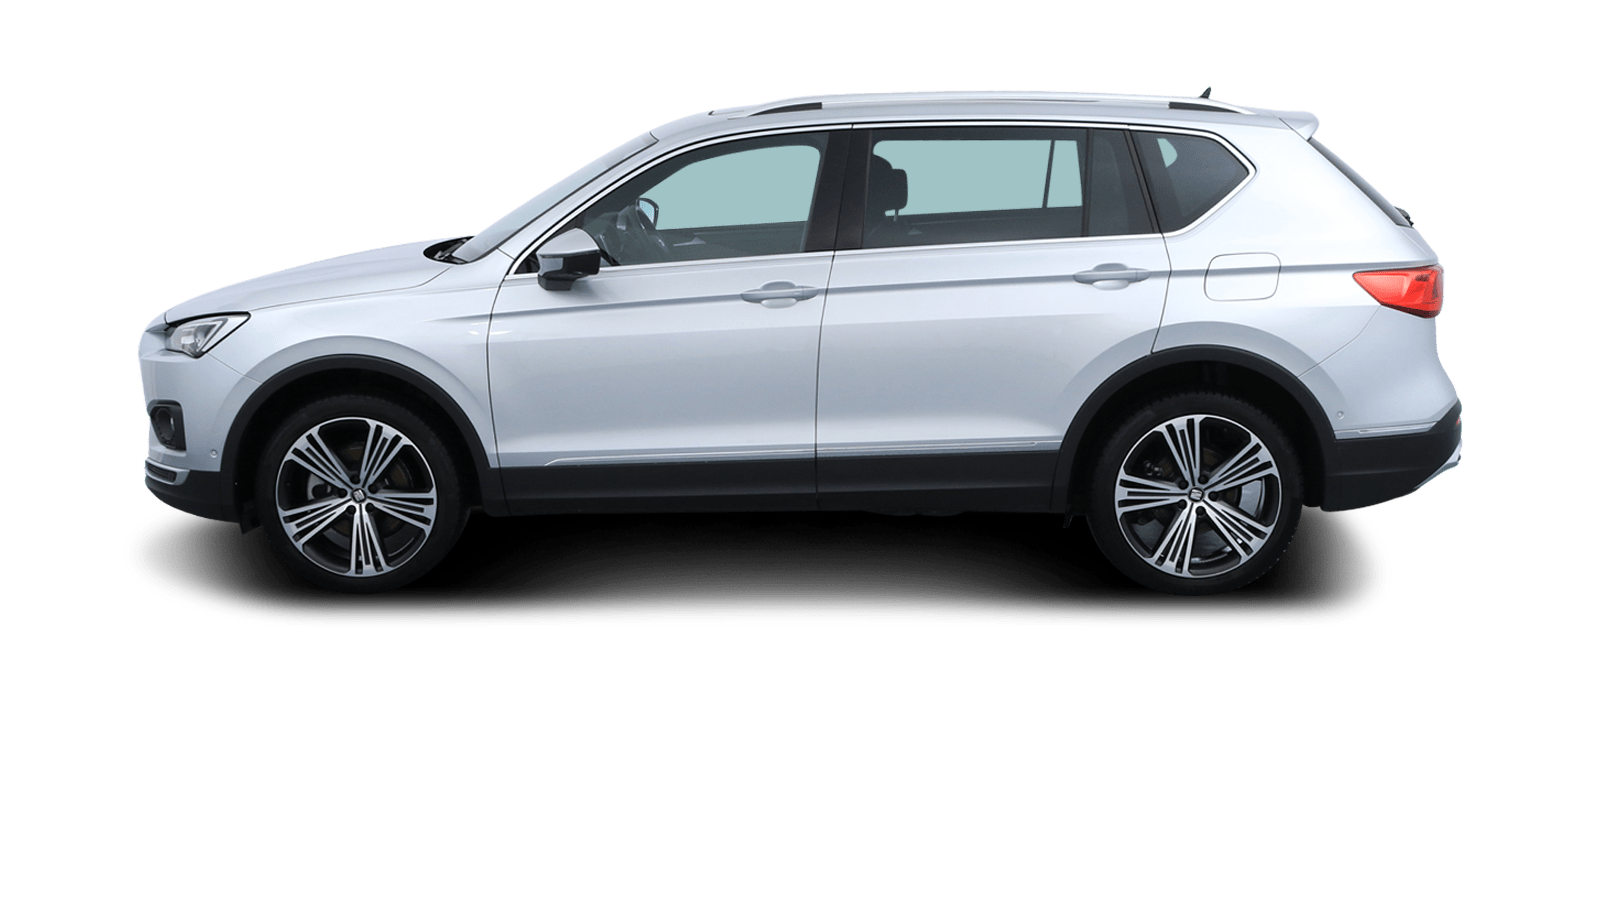 SEAT Tarraco Silver back - Clyde car subscription